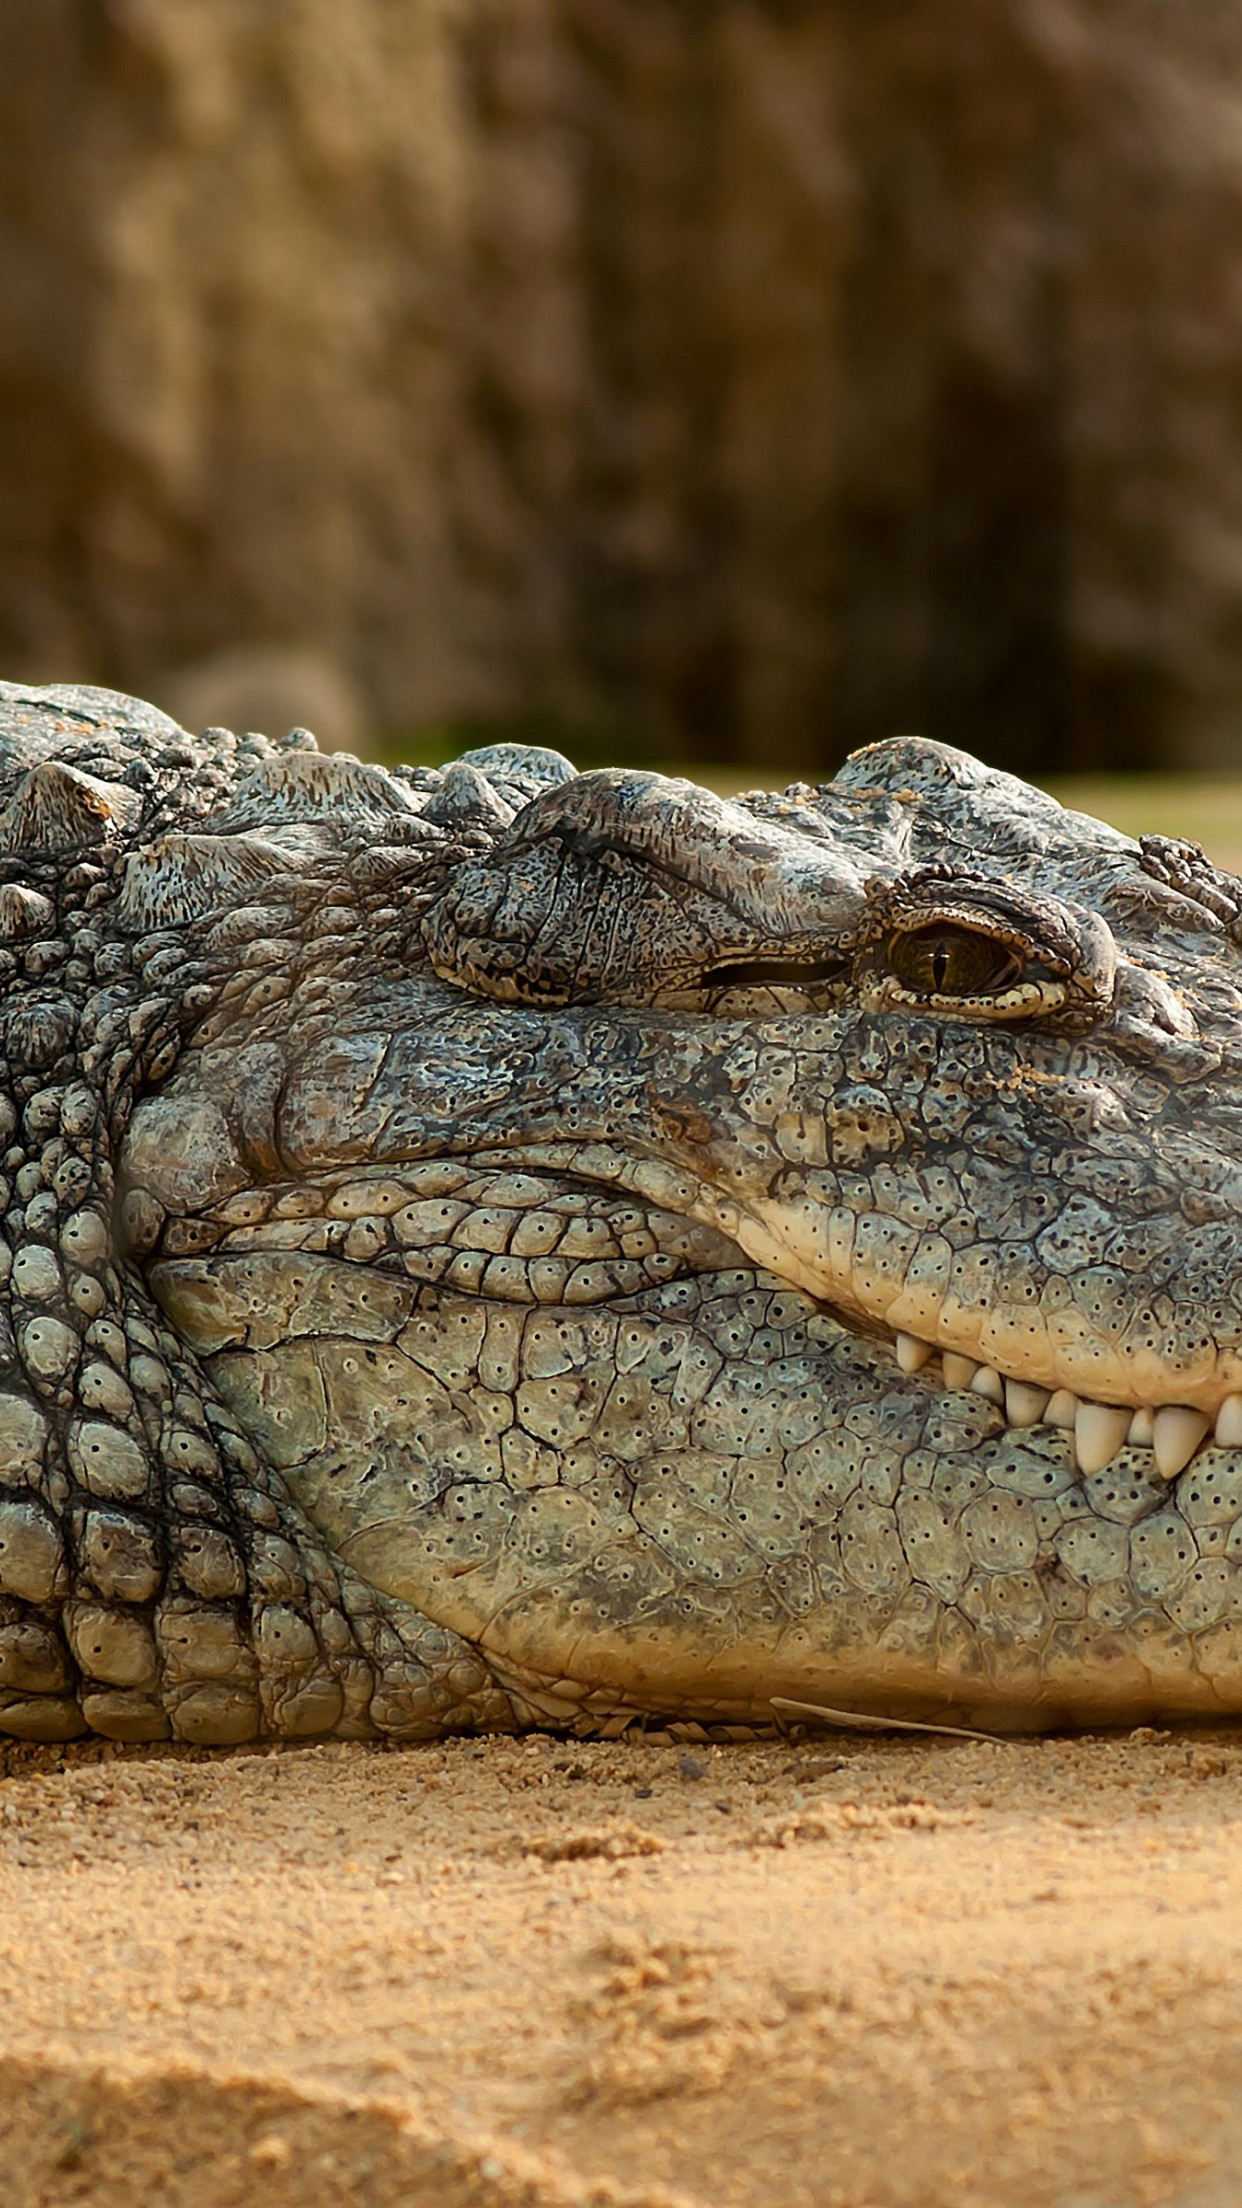 Nile crocodile | 1242x2208 wallpaper